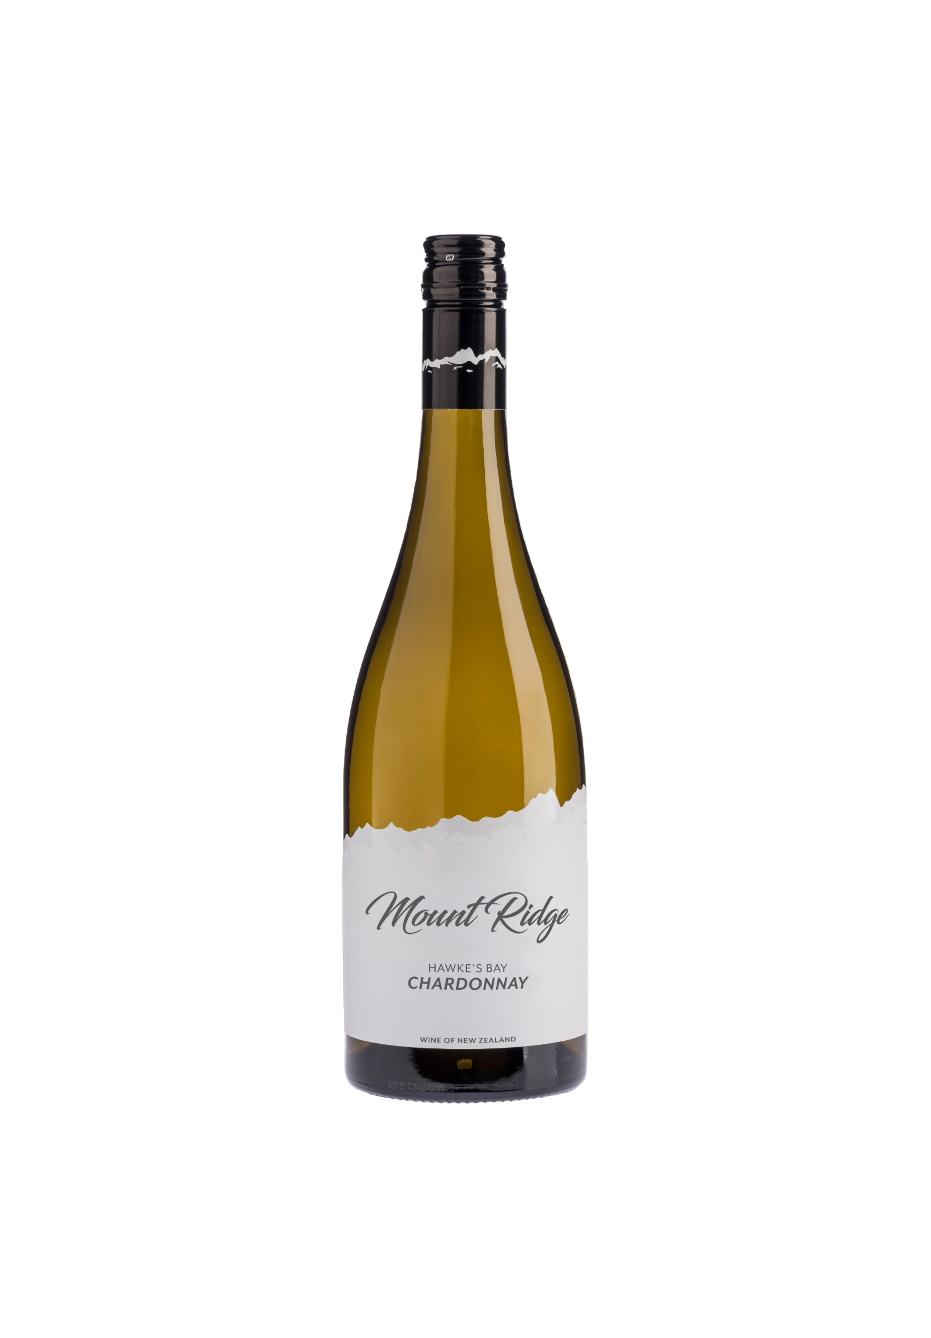 Mount Ridge Hawkes Bay Chardonnay 2019